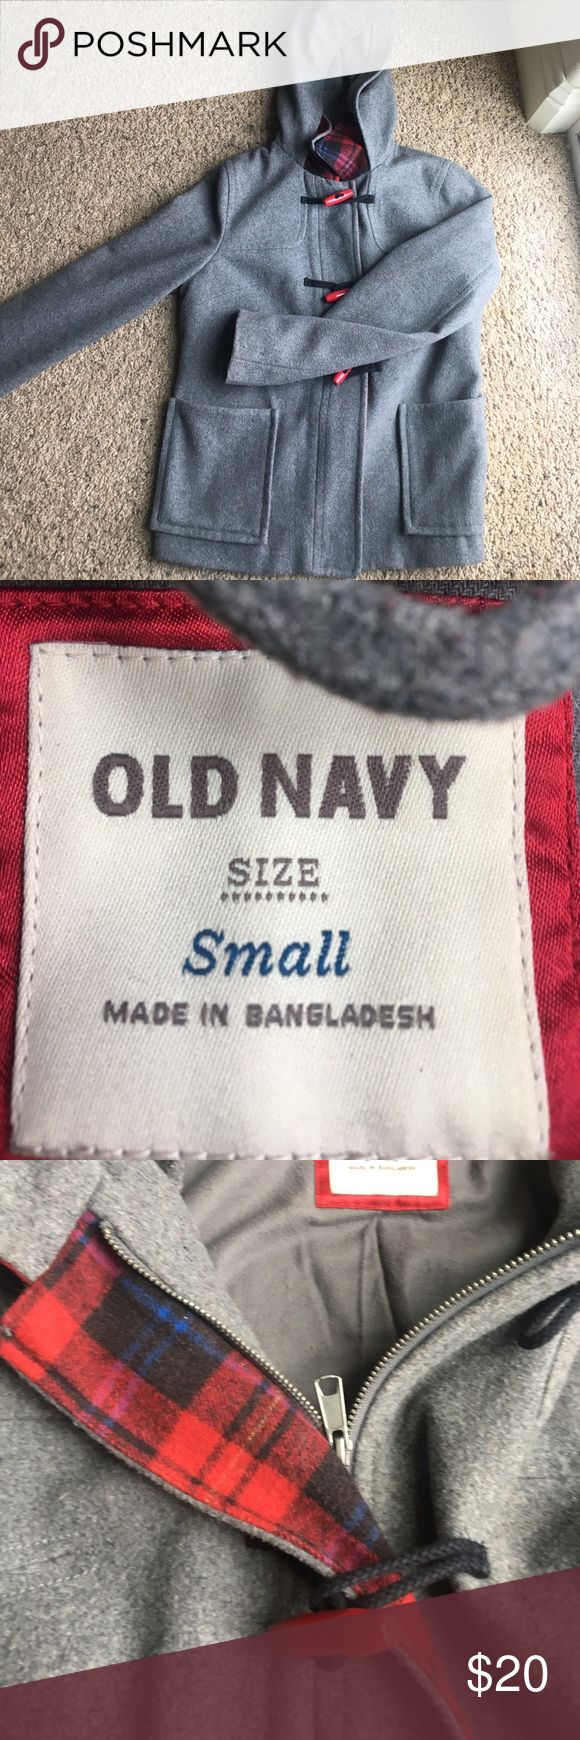 Old Navy Pea coat! Like new pea coat! Very warm and comfy. Has red accent buttons along with a plaid accent along zipper. MAKE OFFERS Old Navy Jackets & Coats Pea Coats